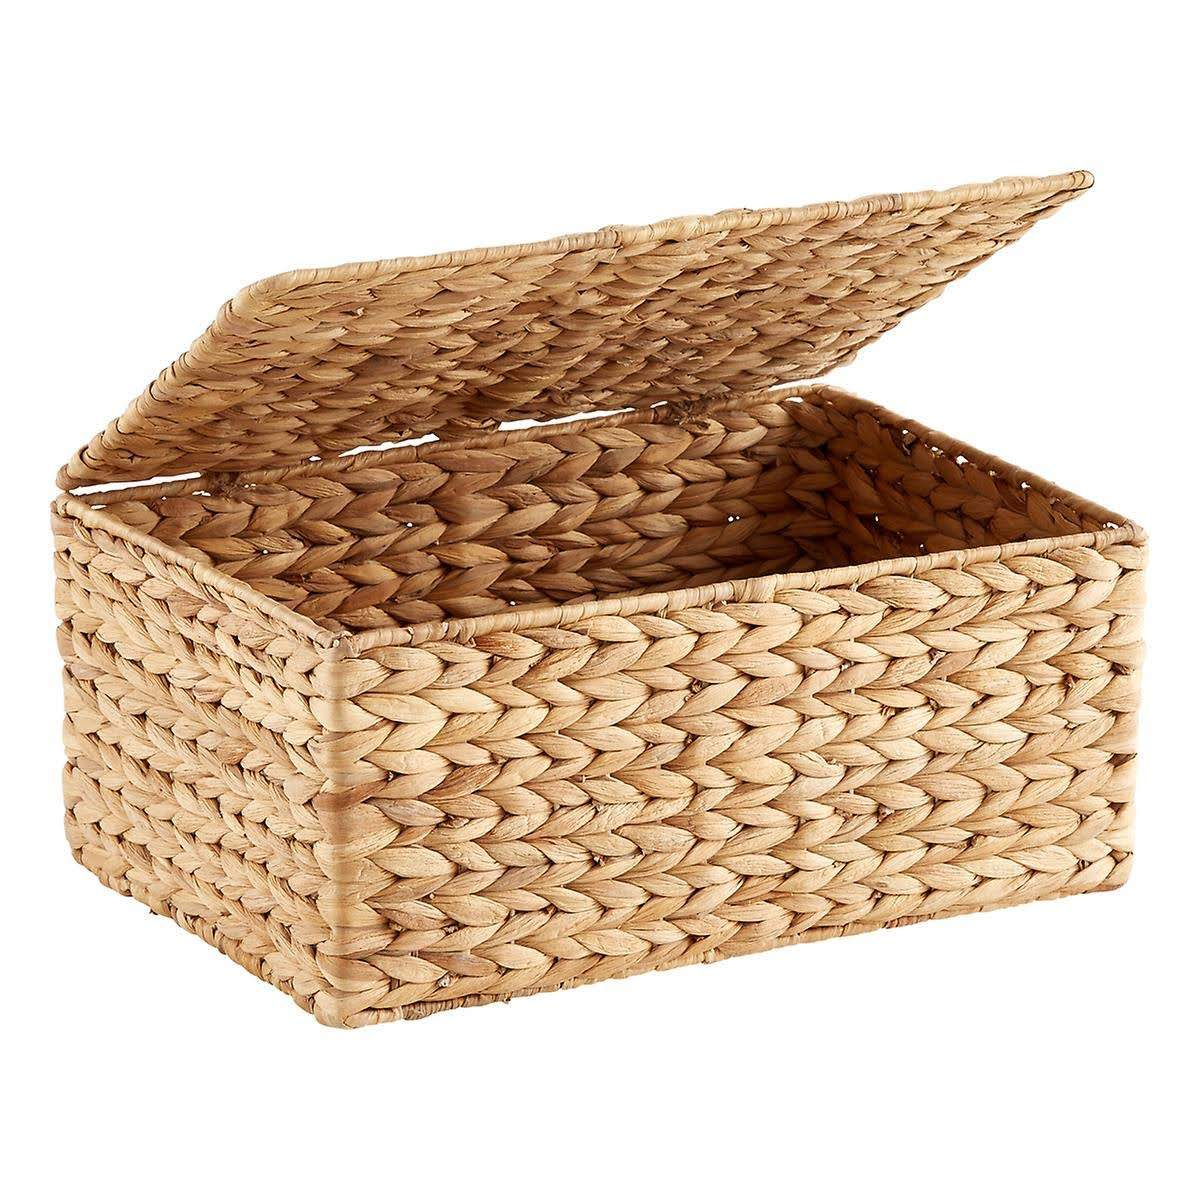 Hot Sale Vietnam Water Hyacinth Baskets With Metal Frame and Lid Eco-friendly High Quality Baskets for Multi-purpose Storage